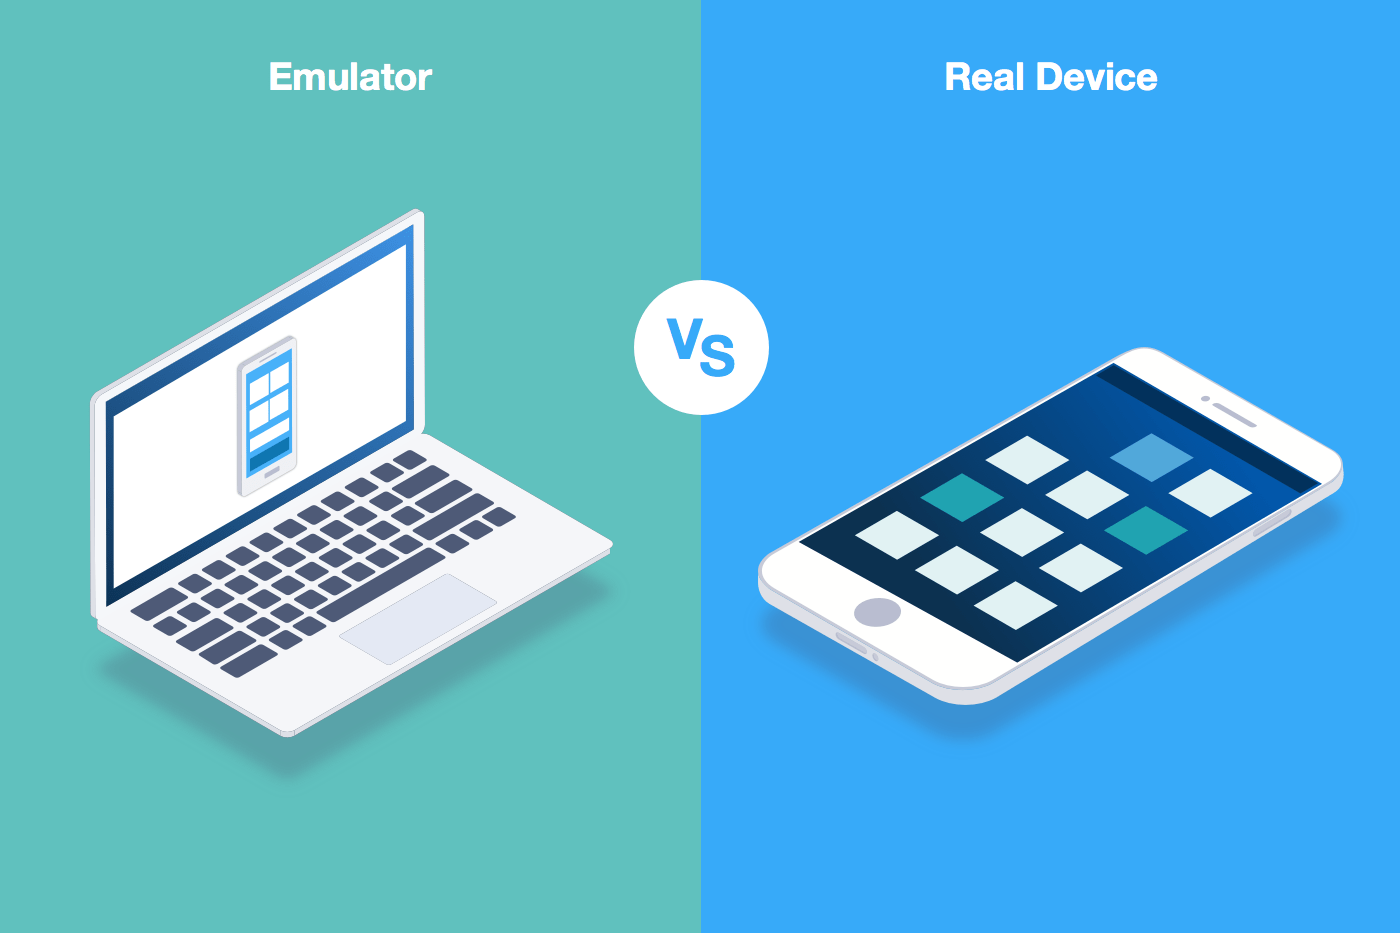 EmulatorVsRealDevice2.0